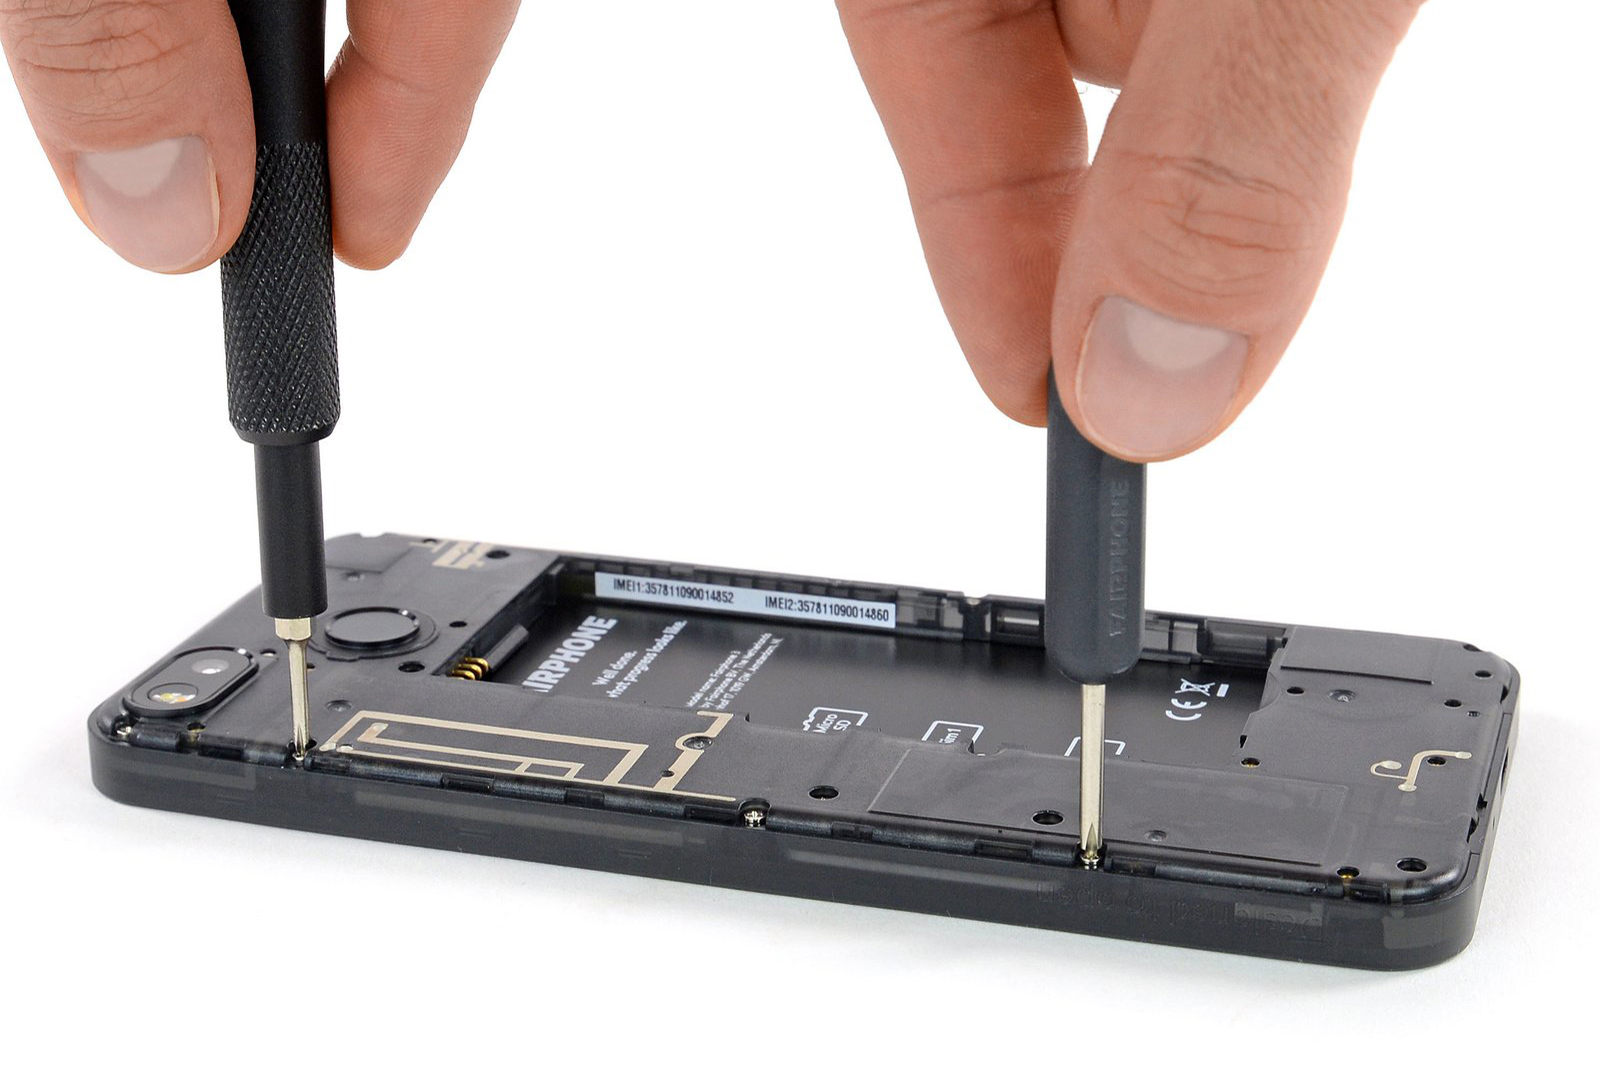 The Fairphone 3 display is tightened with screws only.